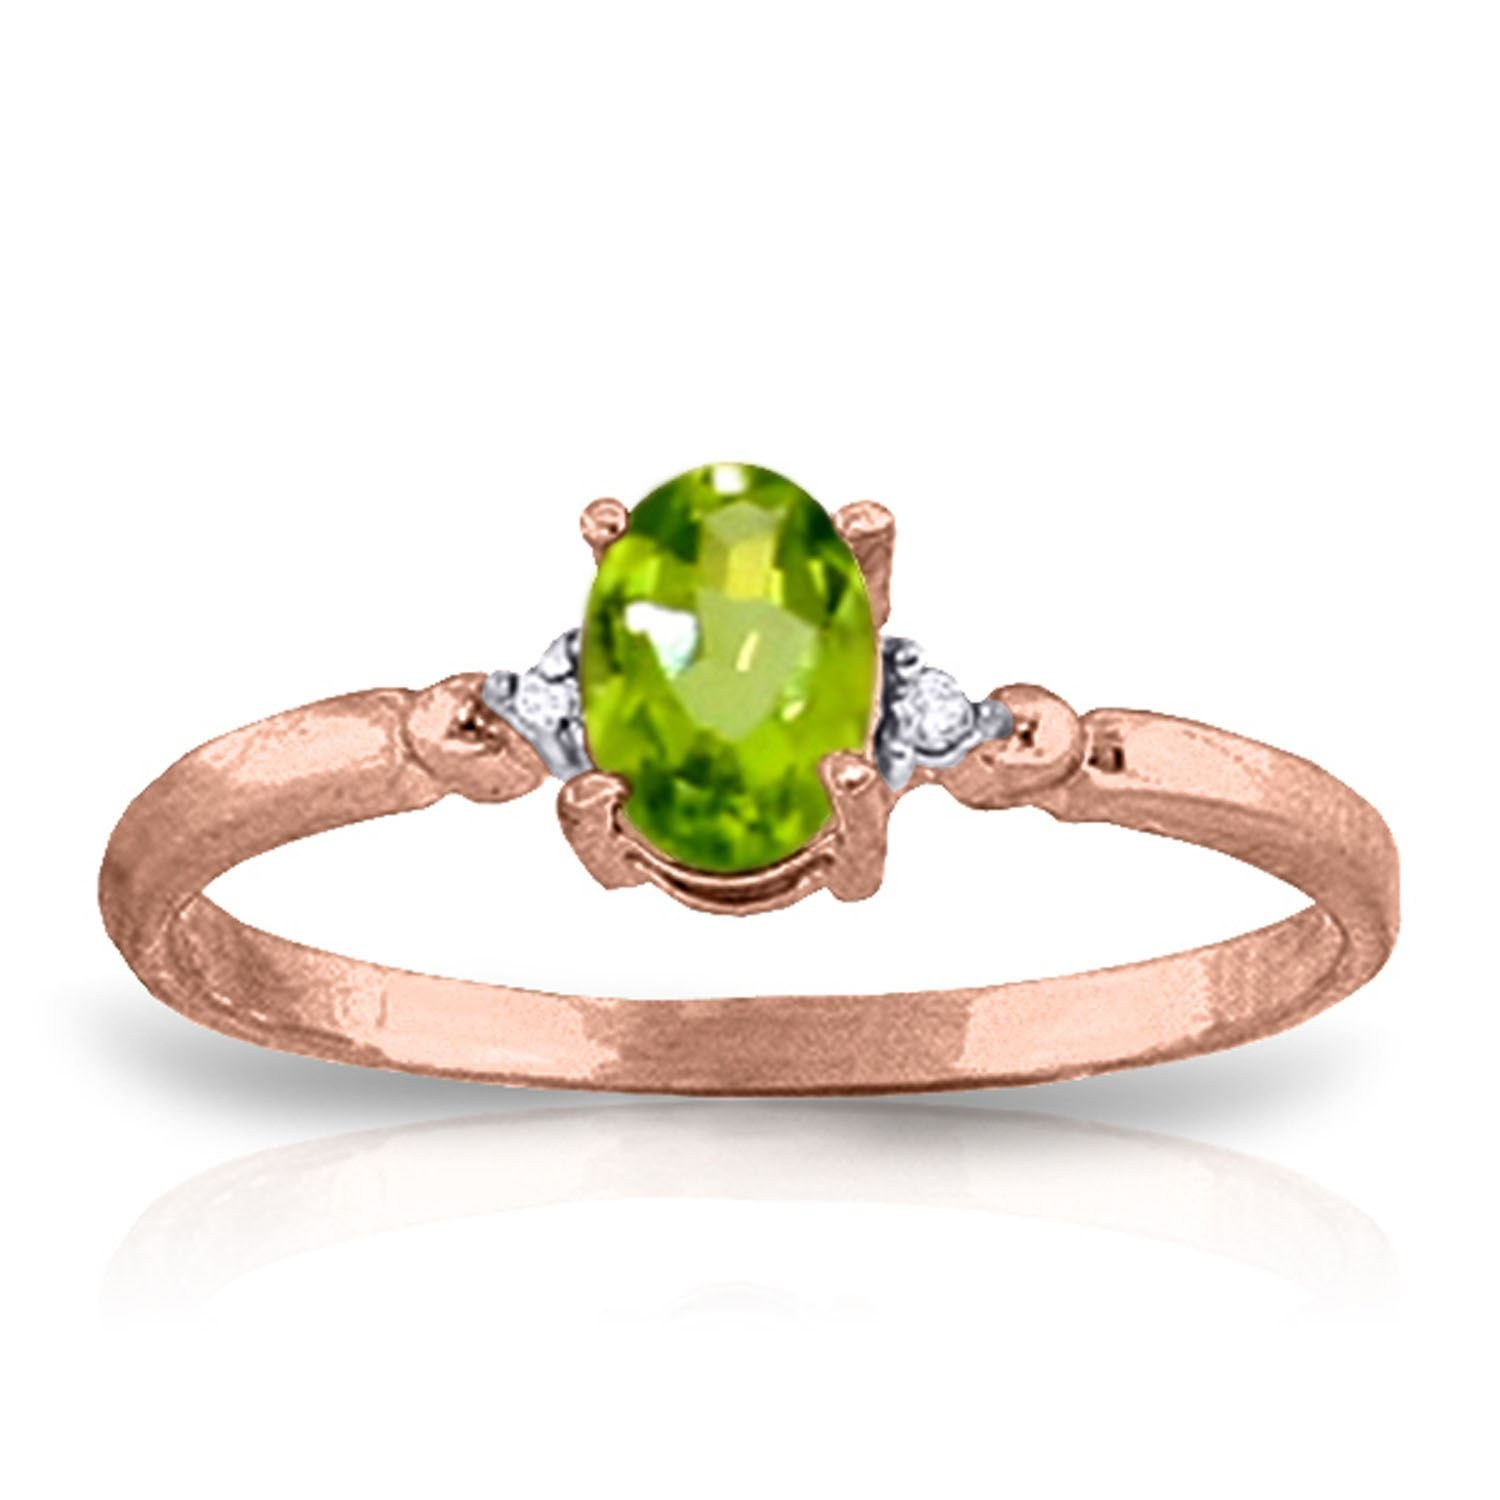 ALARRI 0.46 CTW 14K Solid Rose Gold Young Love Peridot Diamond Ring With Ring Size 5.5 by ALARRI (Image #1)